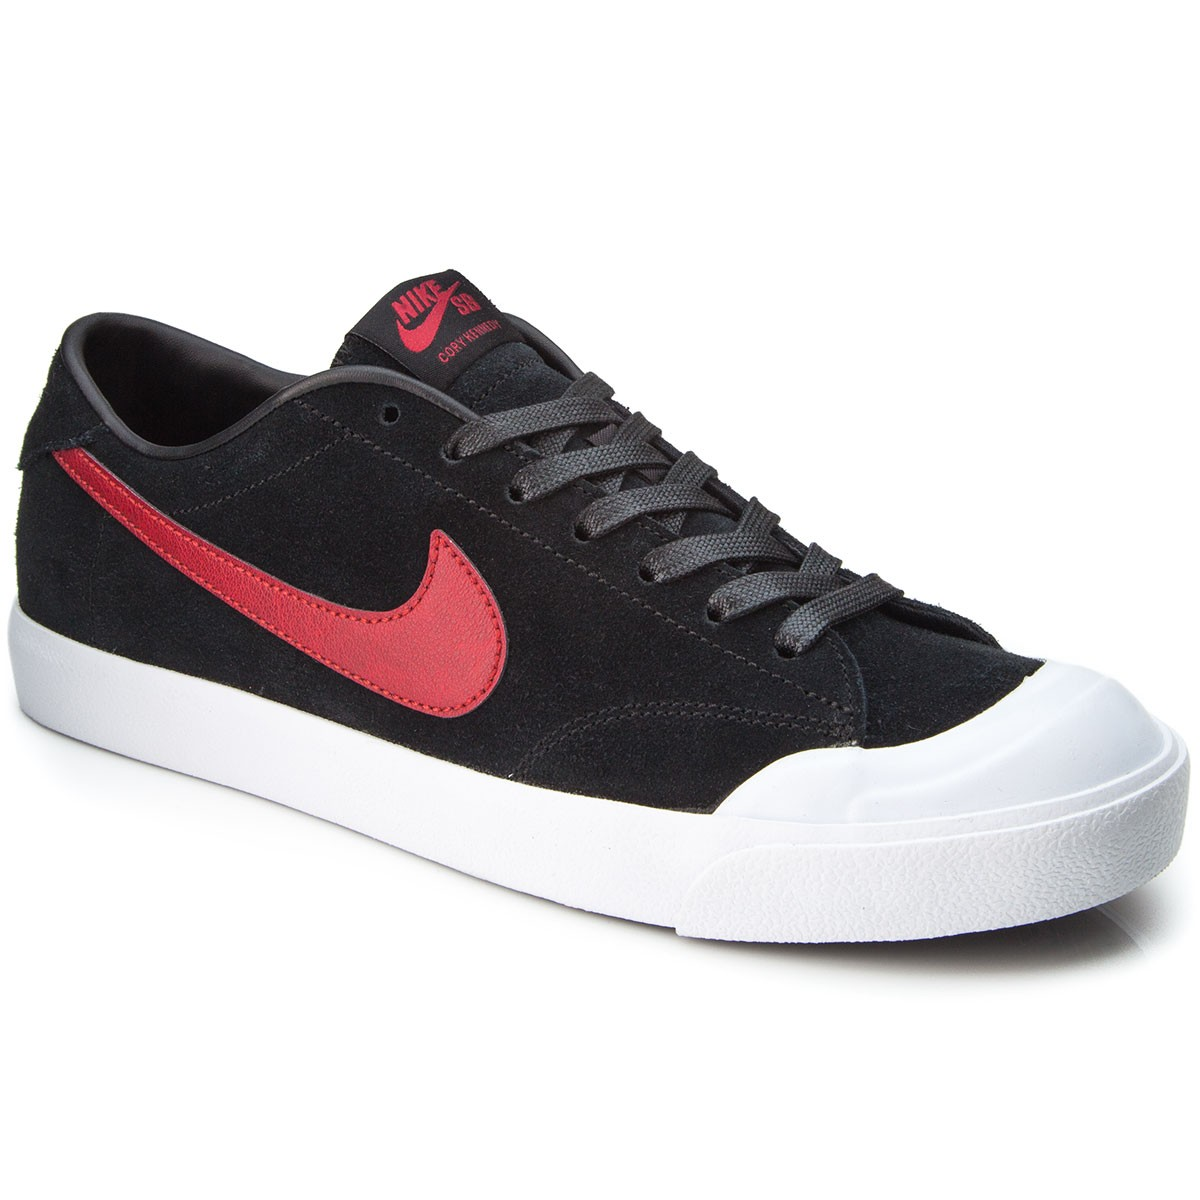 078e0ae16f86 nike-zoom-all-court-ck-shoes-black-white-red-1.1506664428.jpg